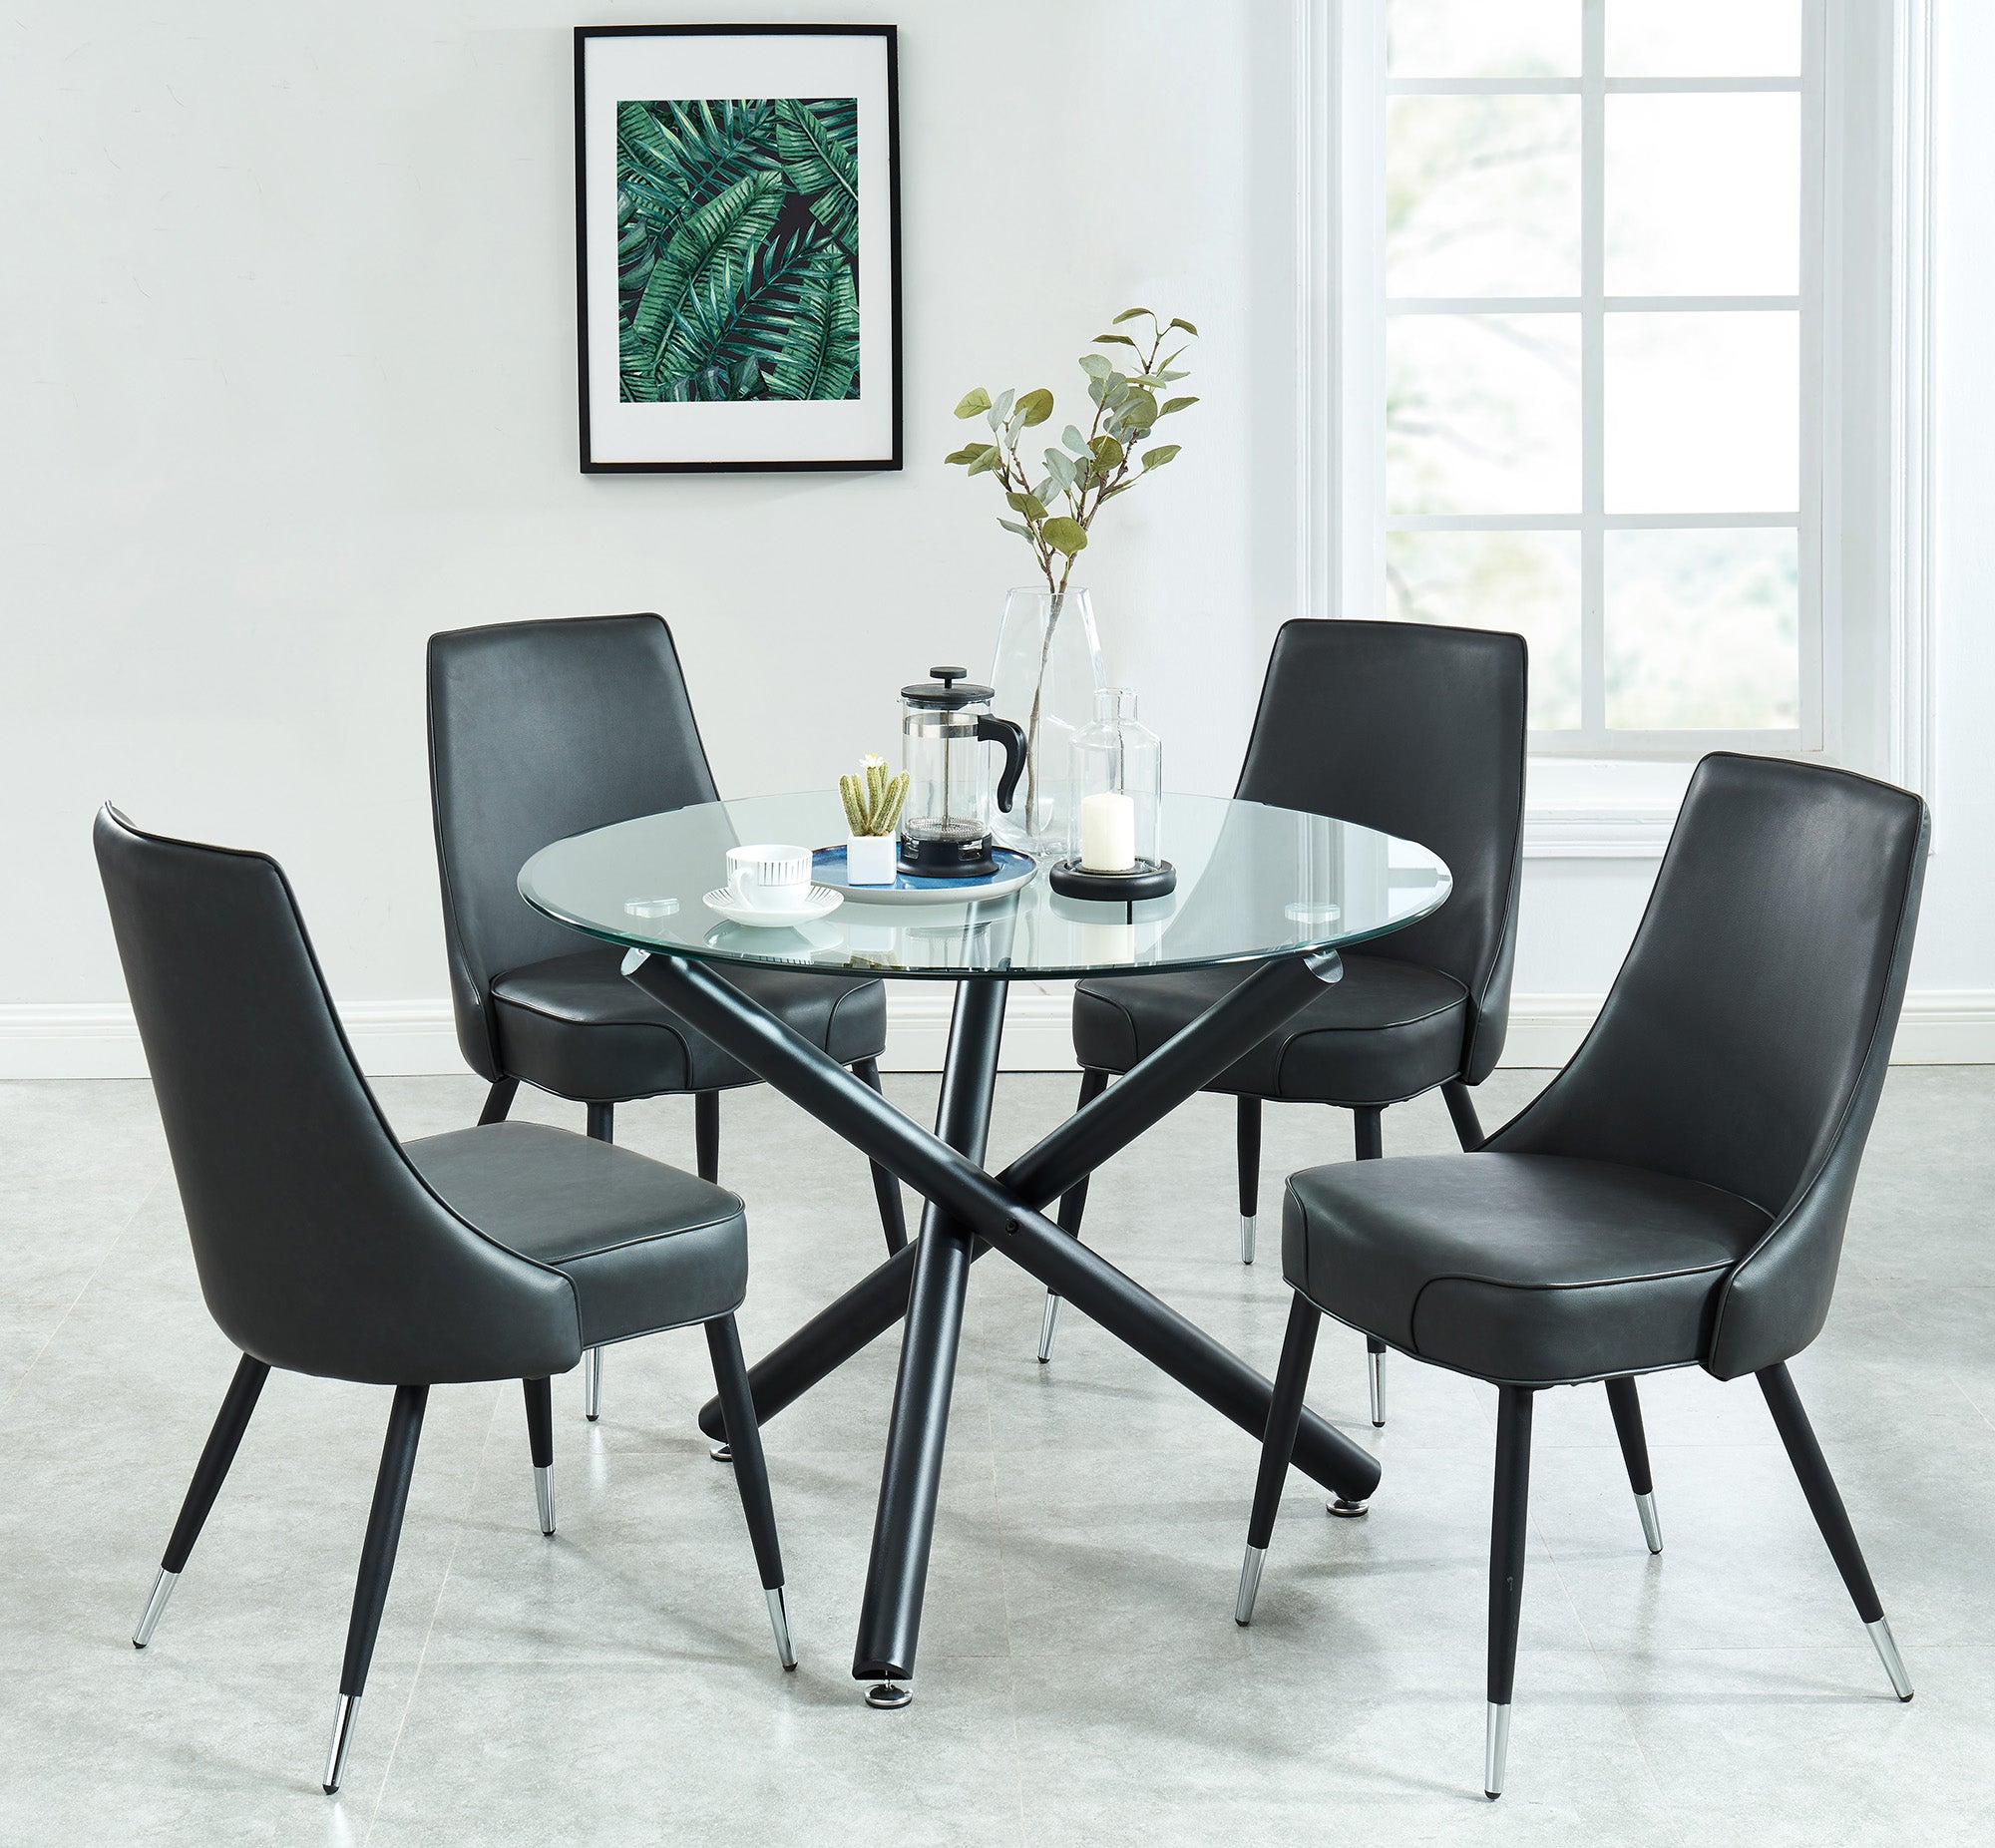 Suzette/Silvano 5pc Dining Set, Black/Vintage Grey